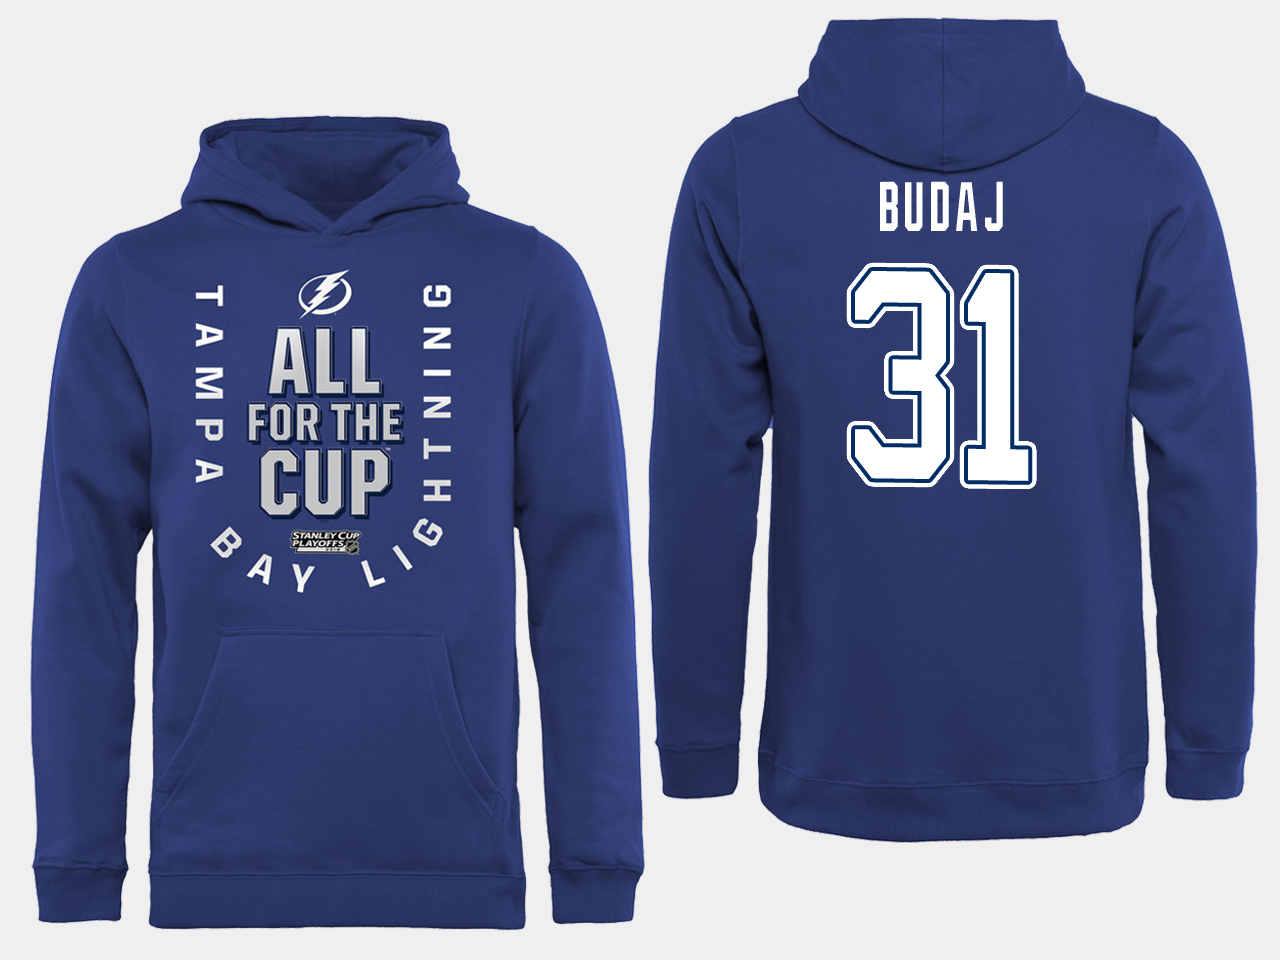 NHL Men adidas Tampa Bay Lightning 31 Budaj blue All for the Cup Hoodie